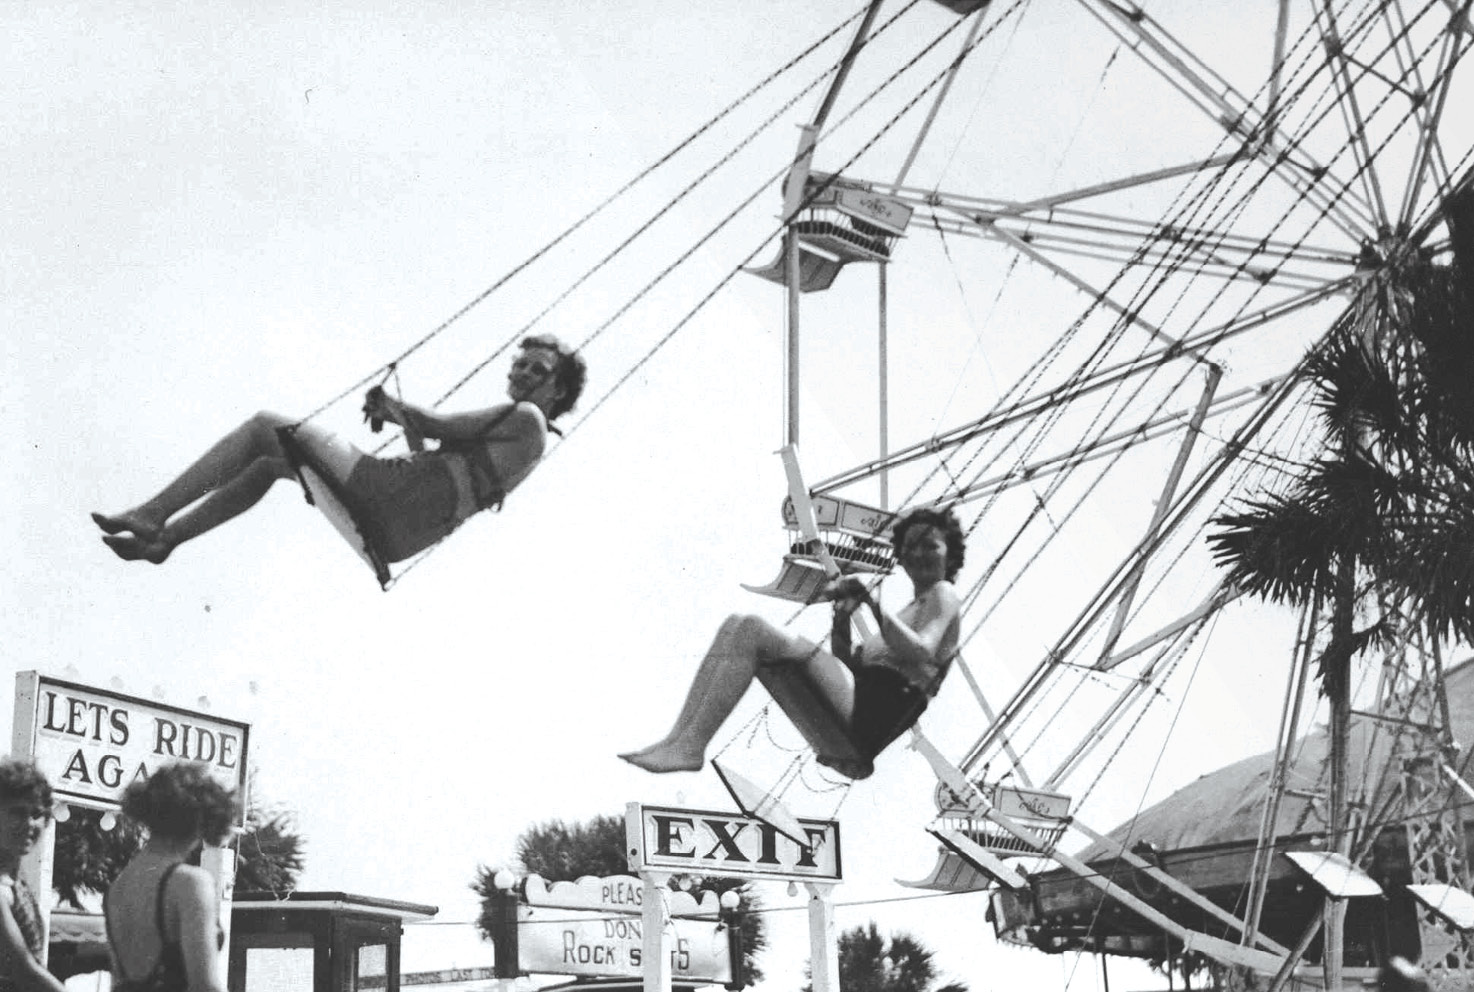 The swing ride at the amusement park in the 1960s